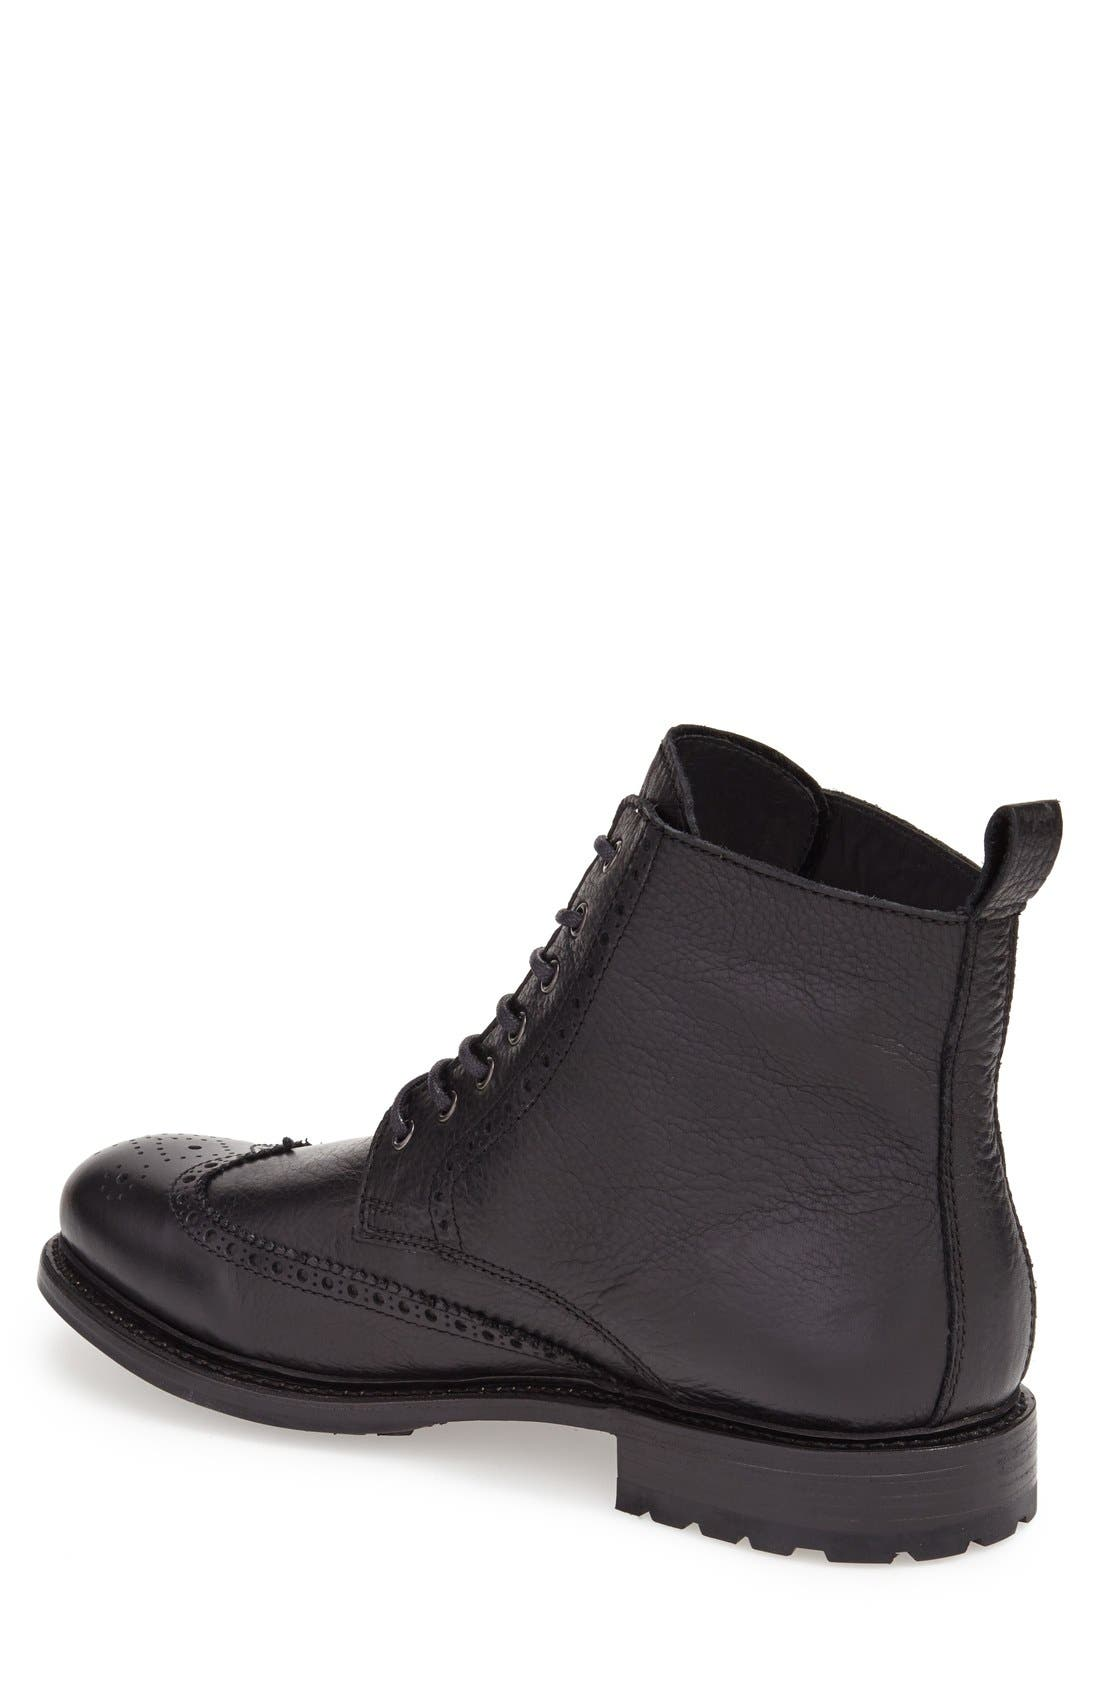 'KM24' Wingtip Boot,                             Alternate thumbnail 2, color,                             Black